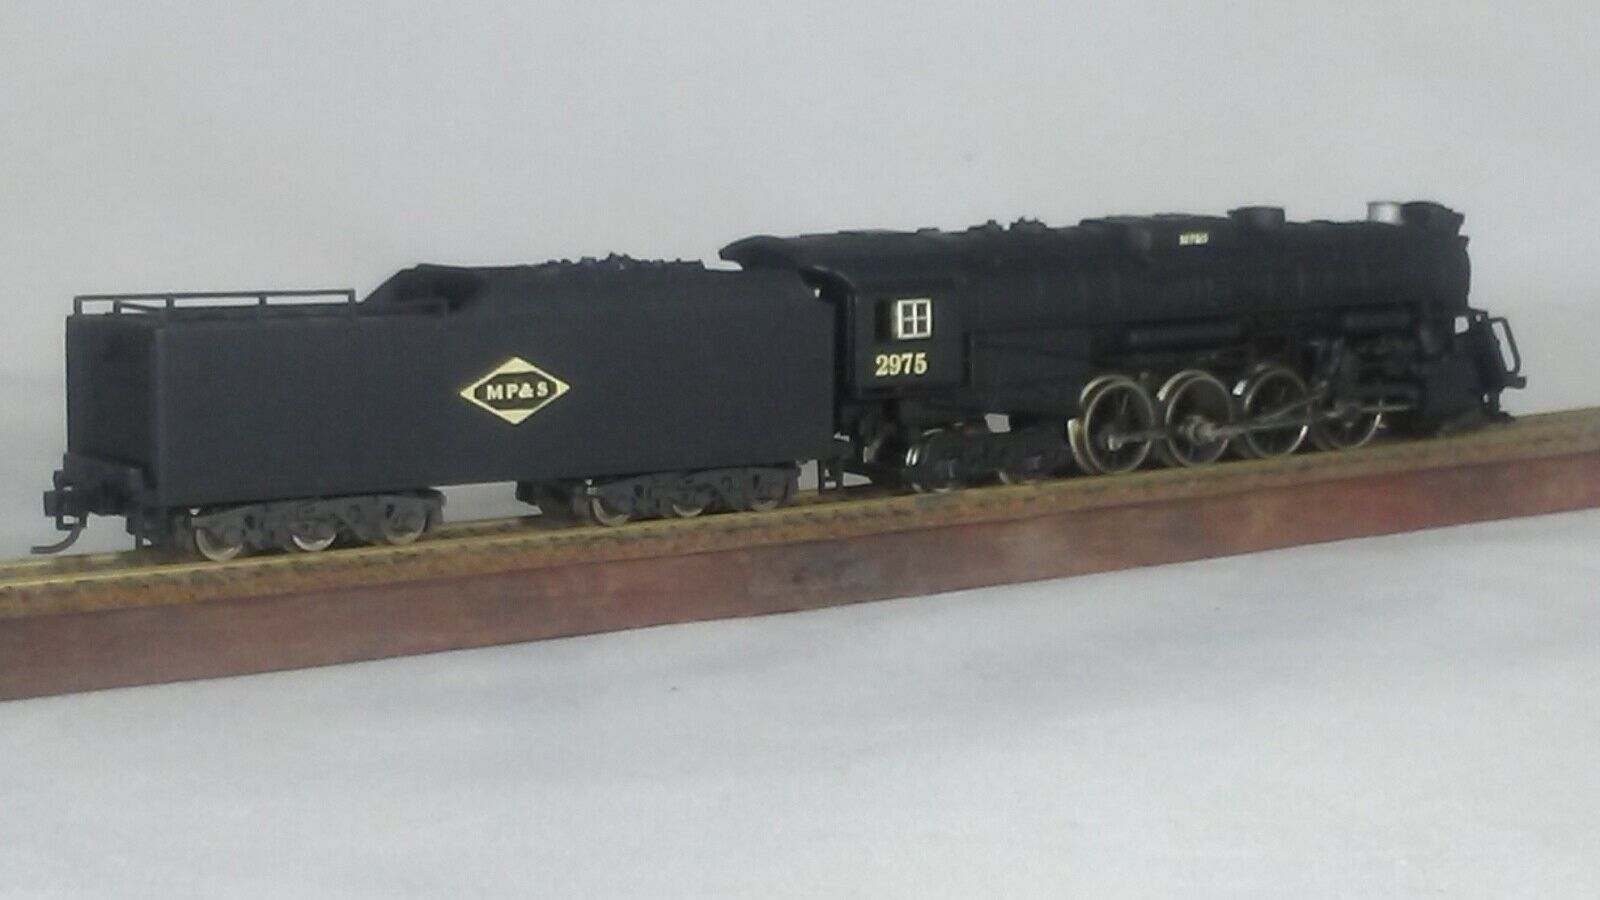 Model Railroad N Scale Steam Locomotive with Tender